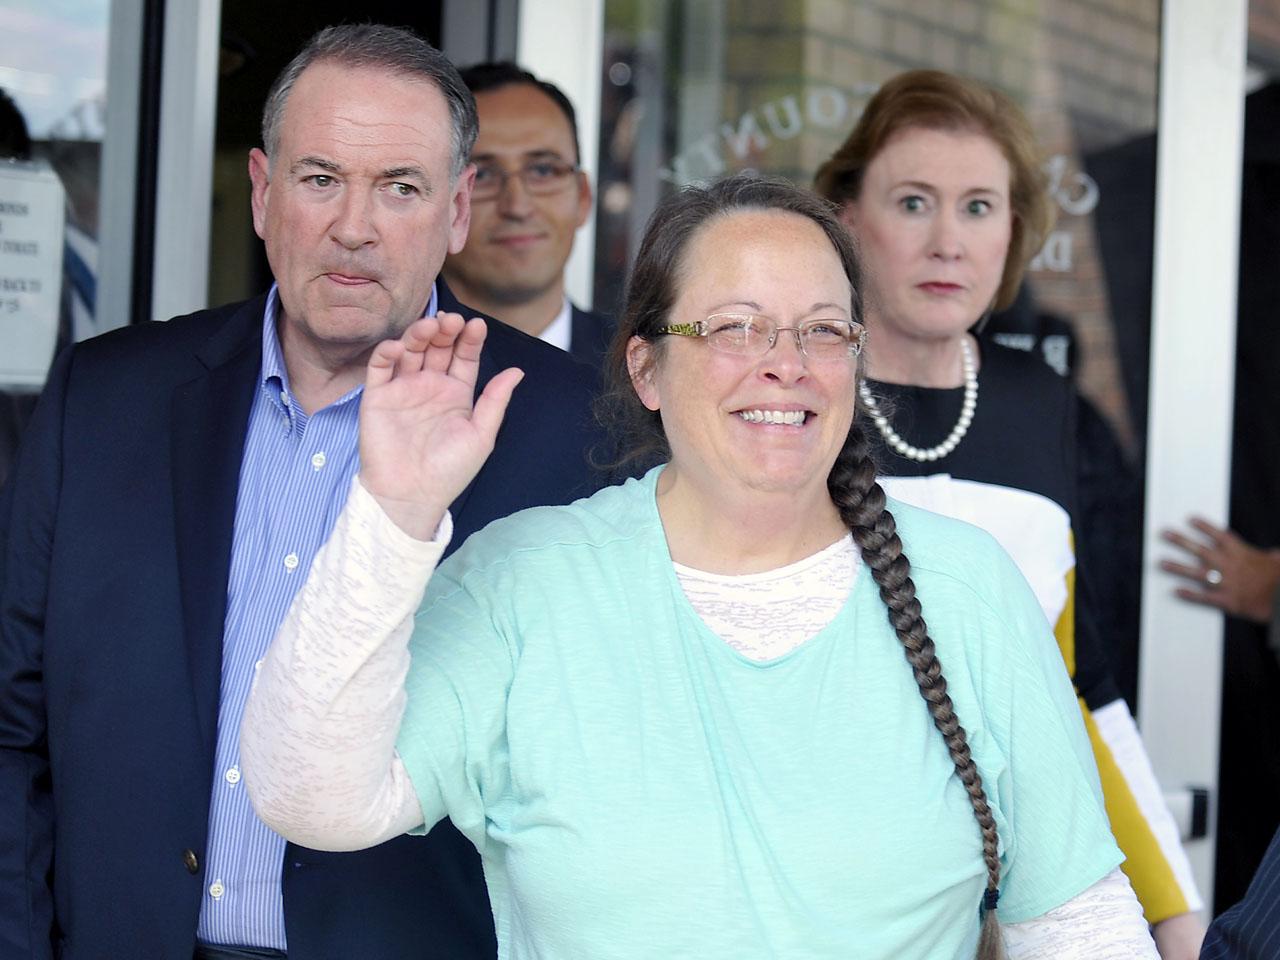 Amy Delucia kim davis, clerk who refused to issue gay marriage licenses